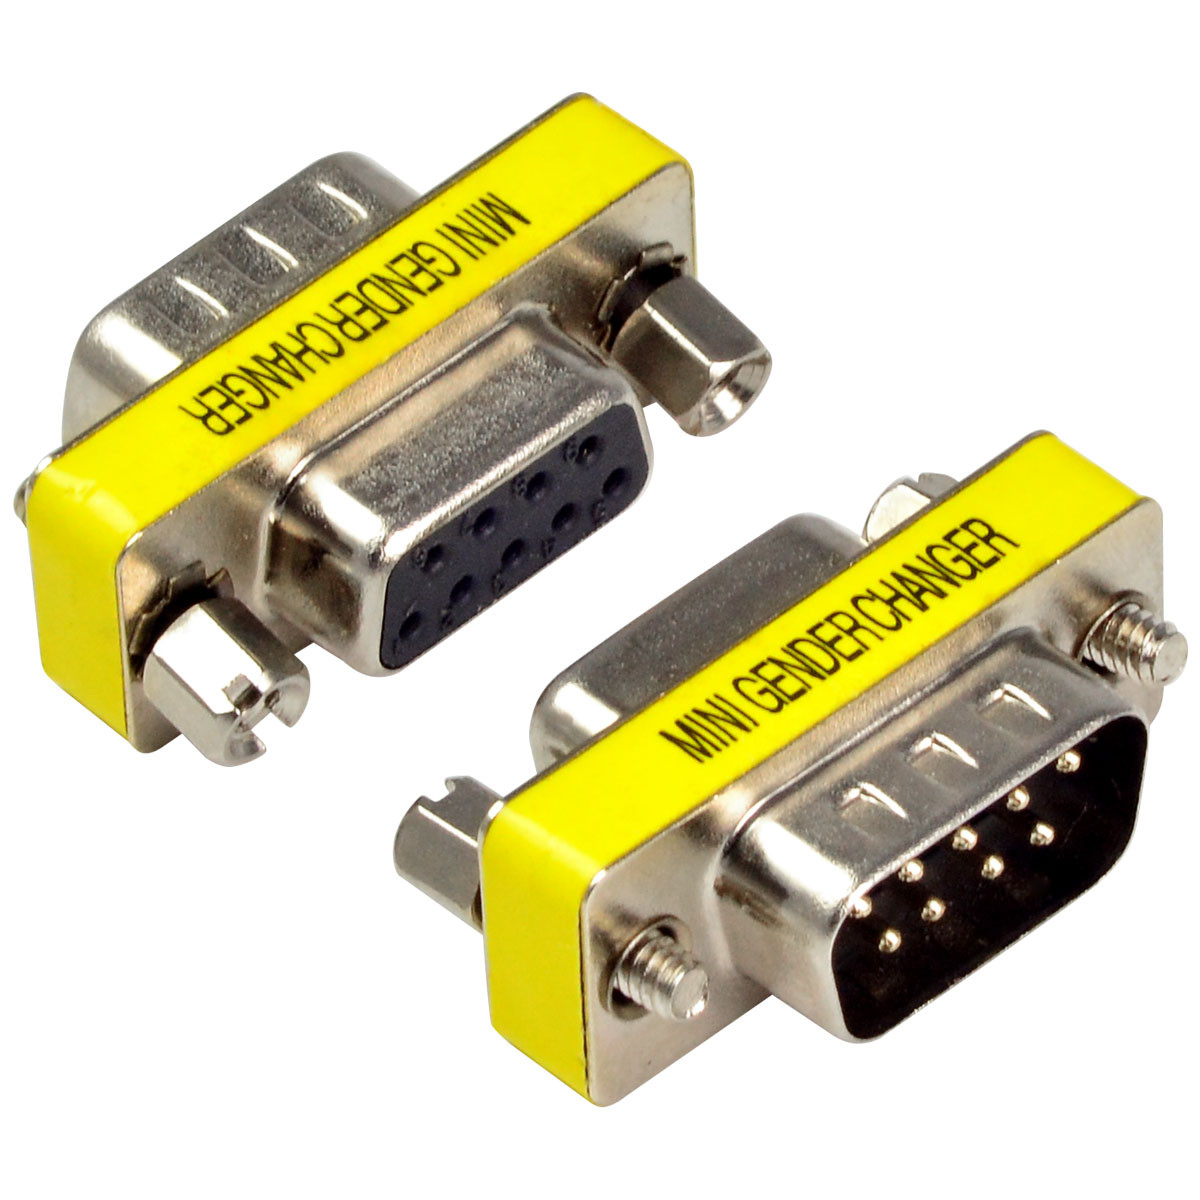 MENGS® 9 Pin RS232 DB9 Pin Male To Female Serial Cable Gender Changer Adapter Connector